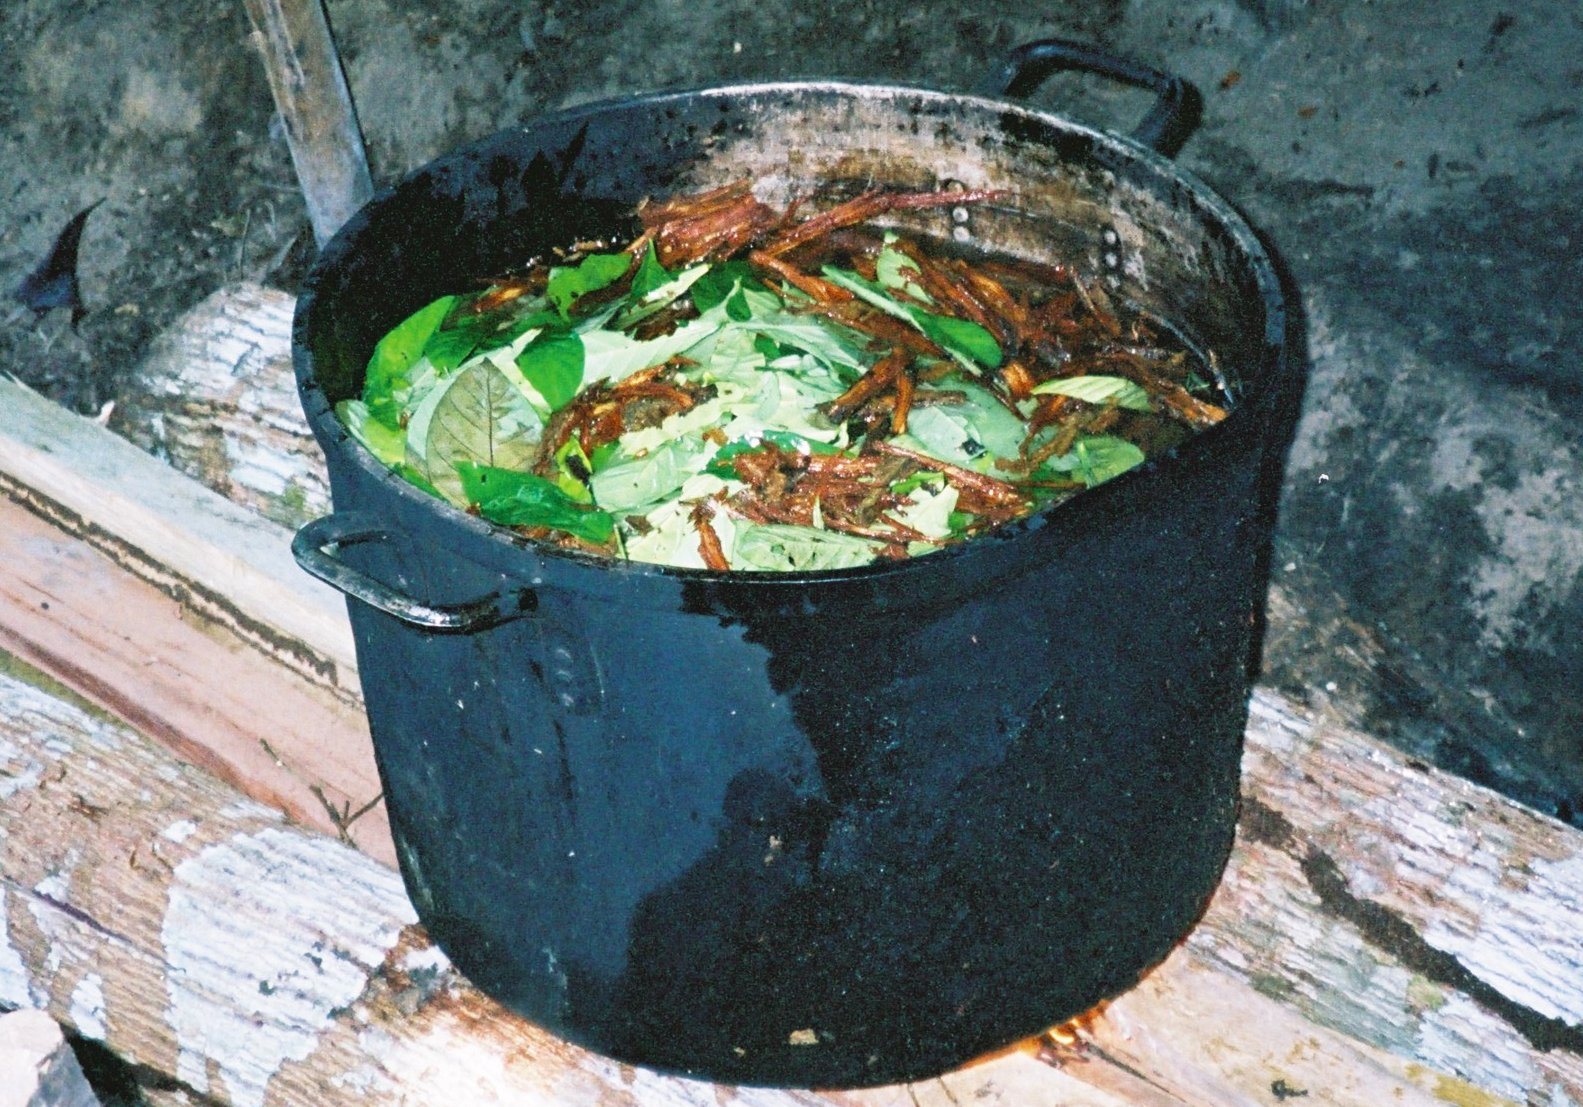 taboojive.com_wp-content_uploads_2014_01_ayahuasca-brewing.jpg